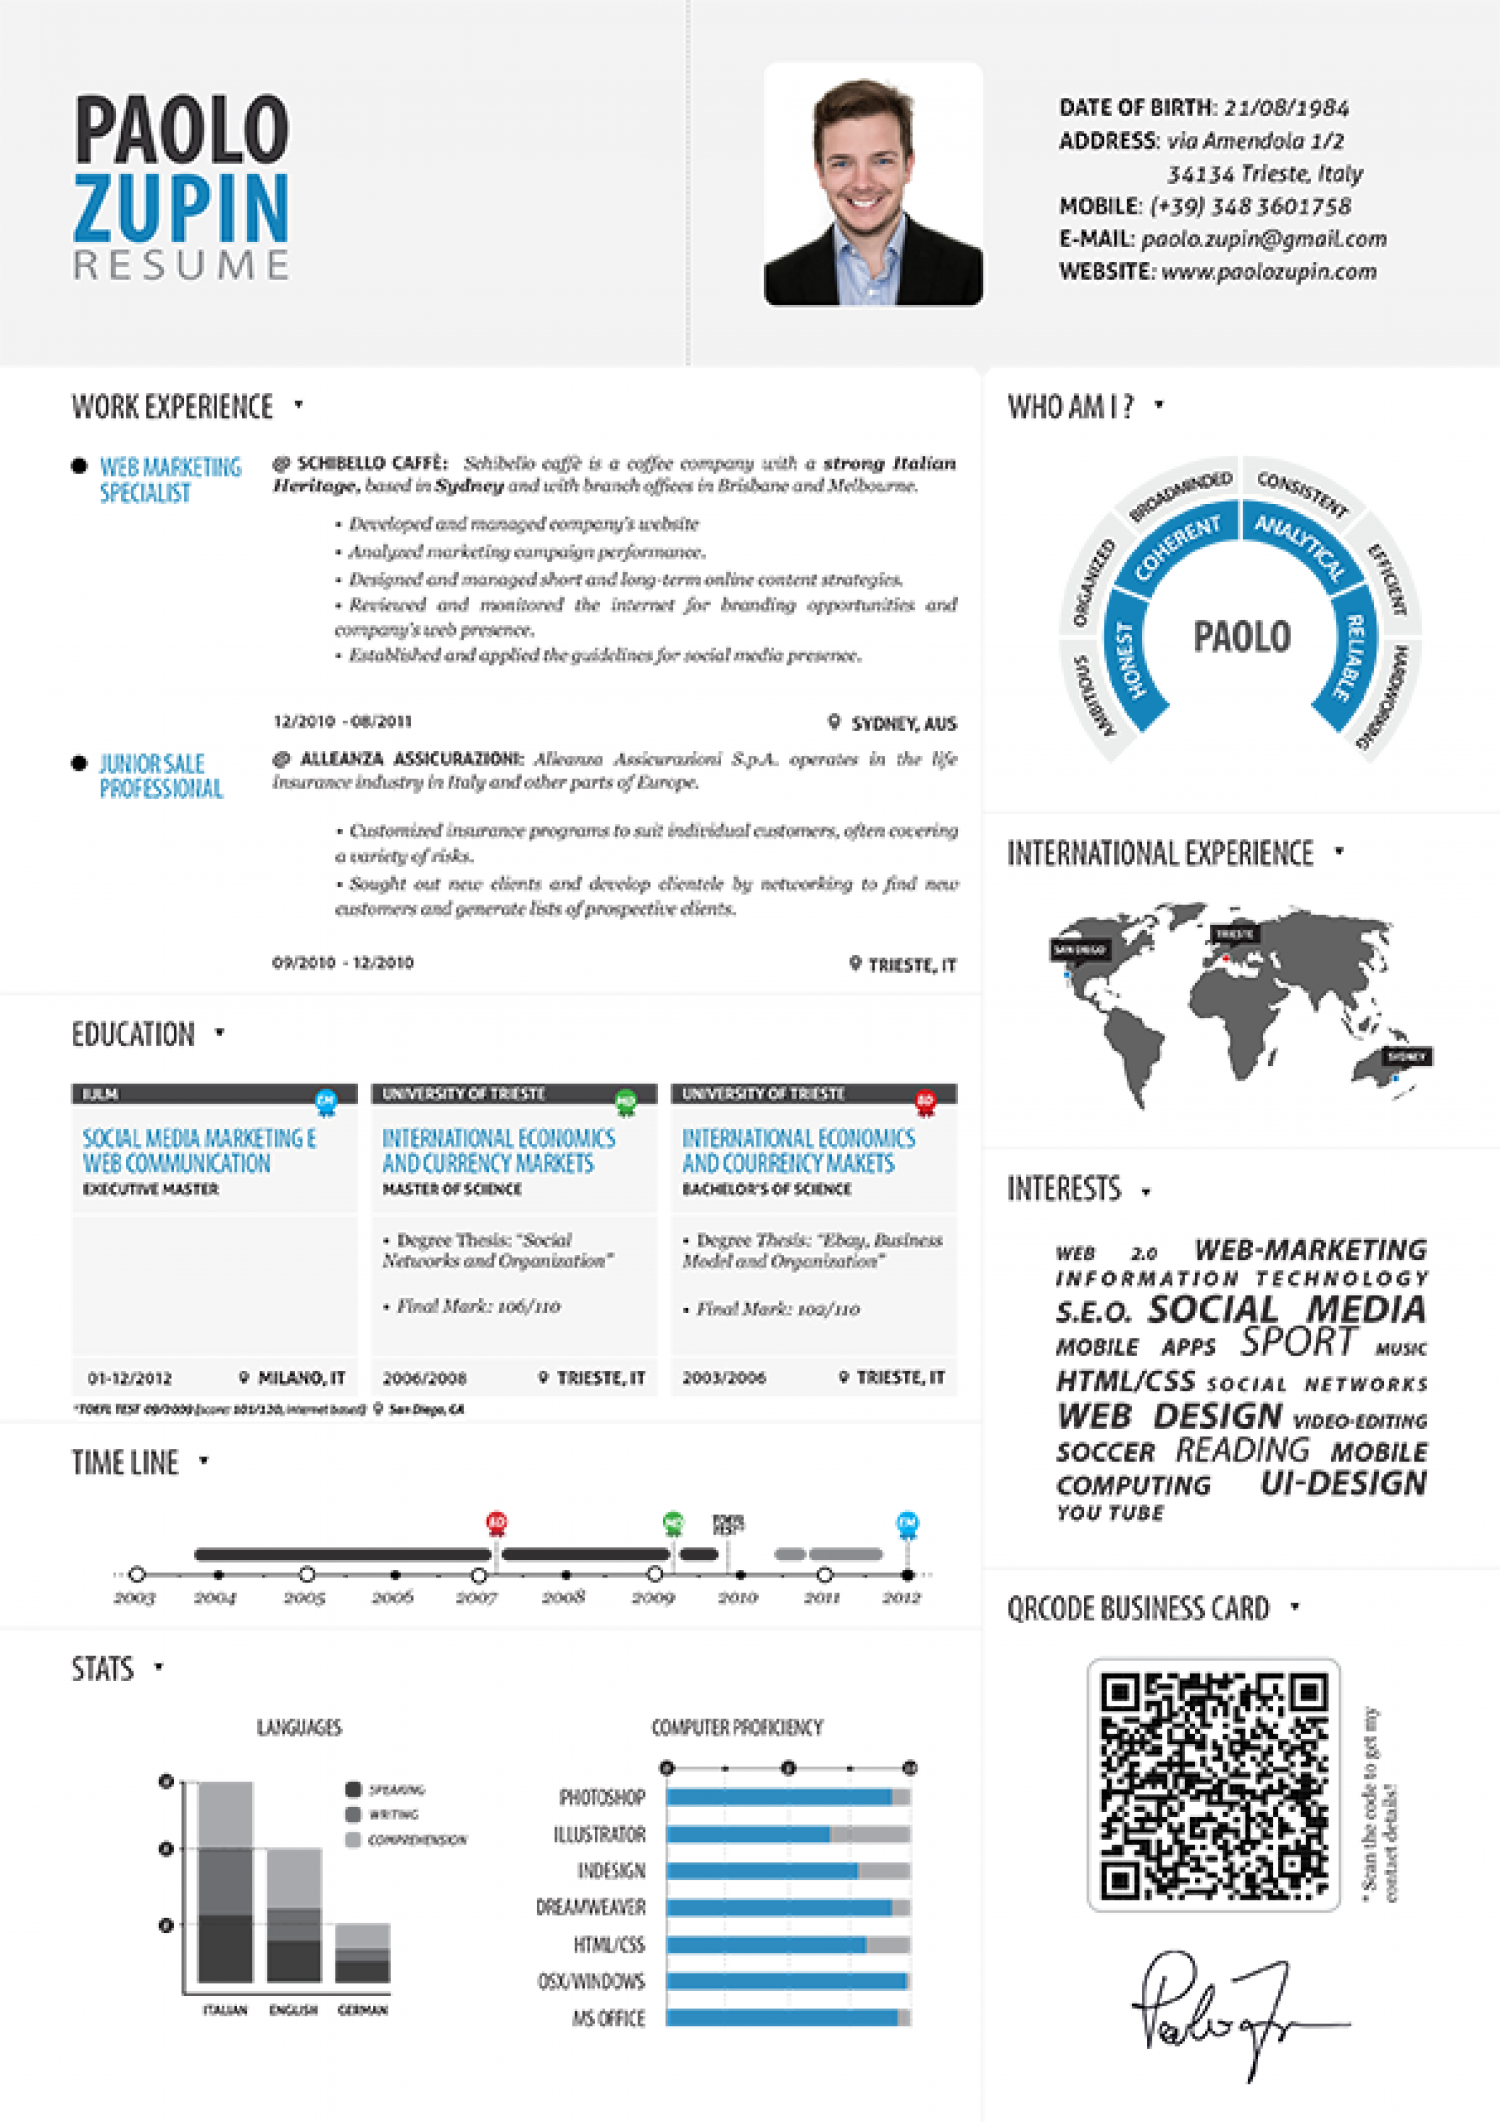 infographic cv Paolo Zupin   Infographic Resume | Visual.ly